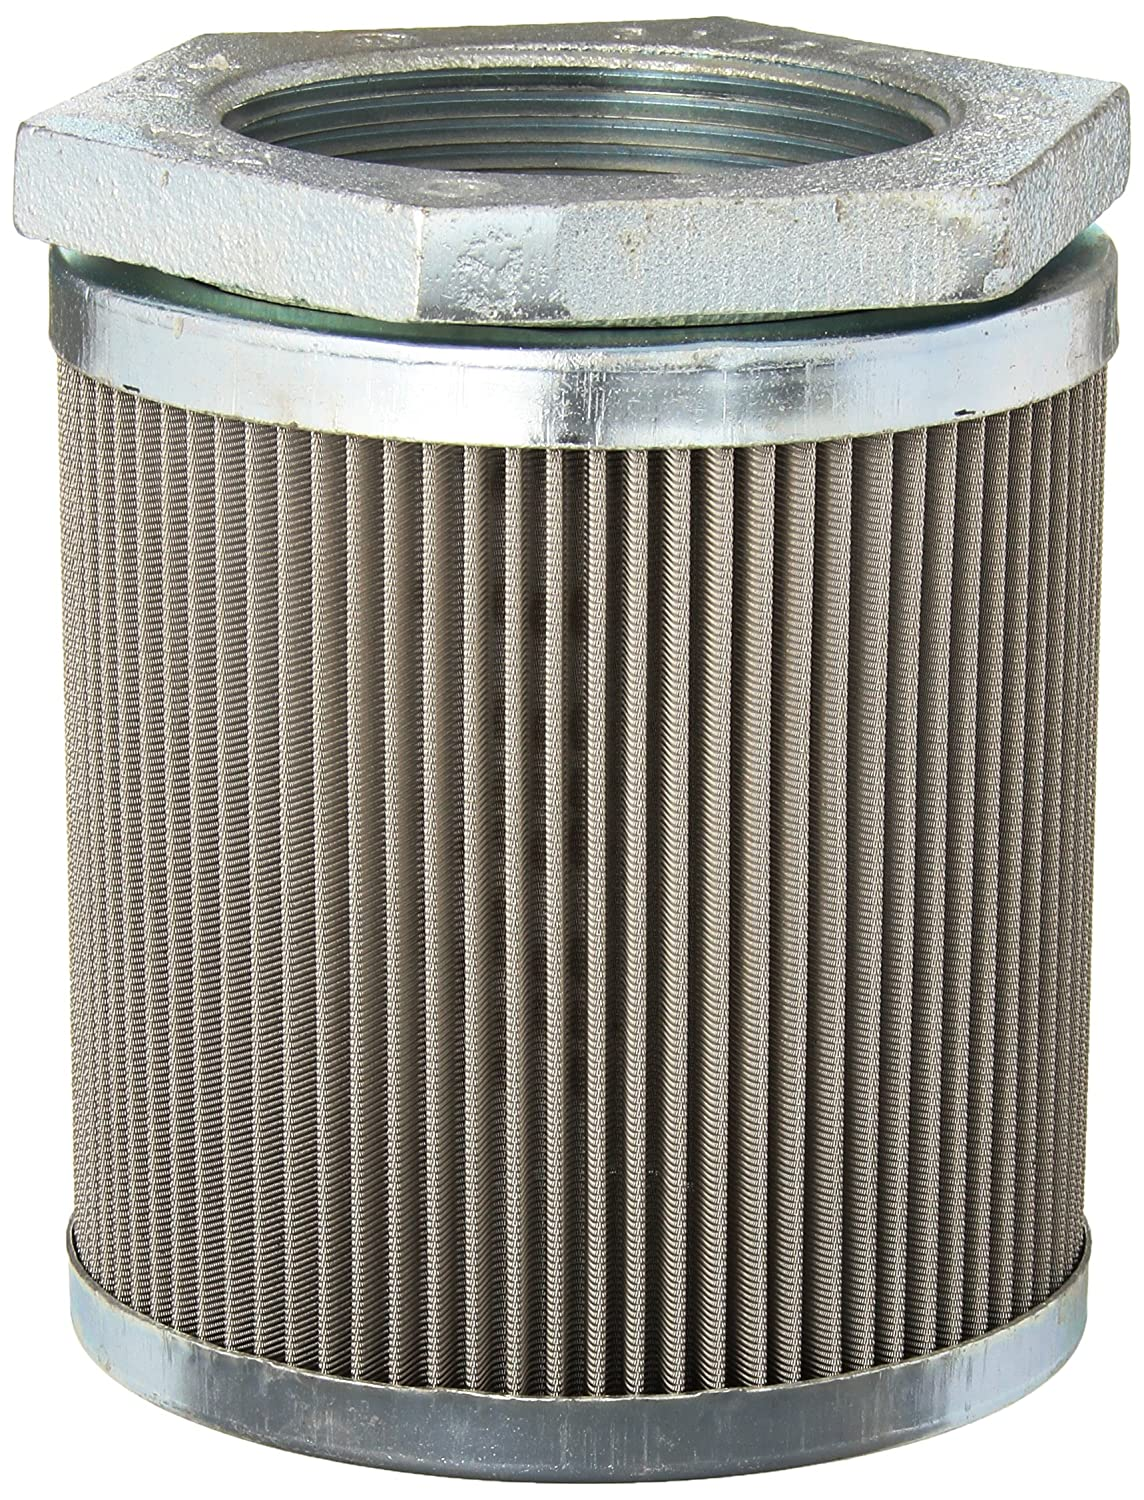 Killer Filter Replacement for Donaldson P190818-016-436